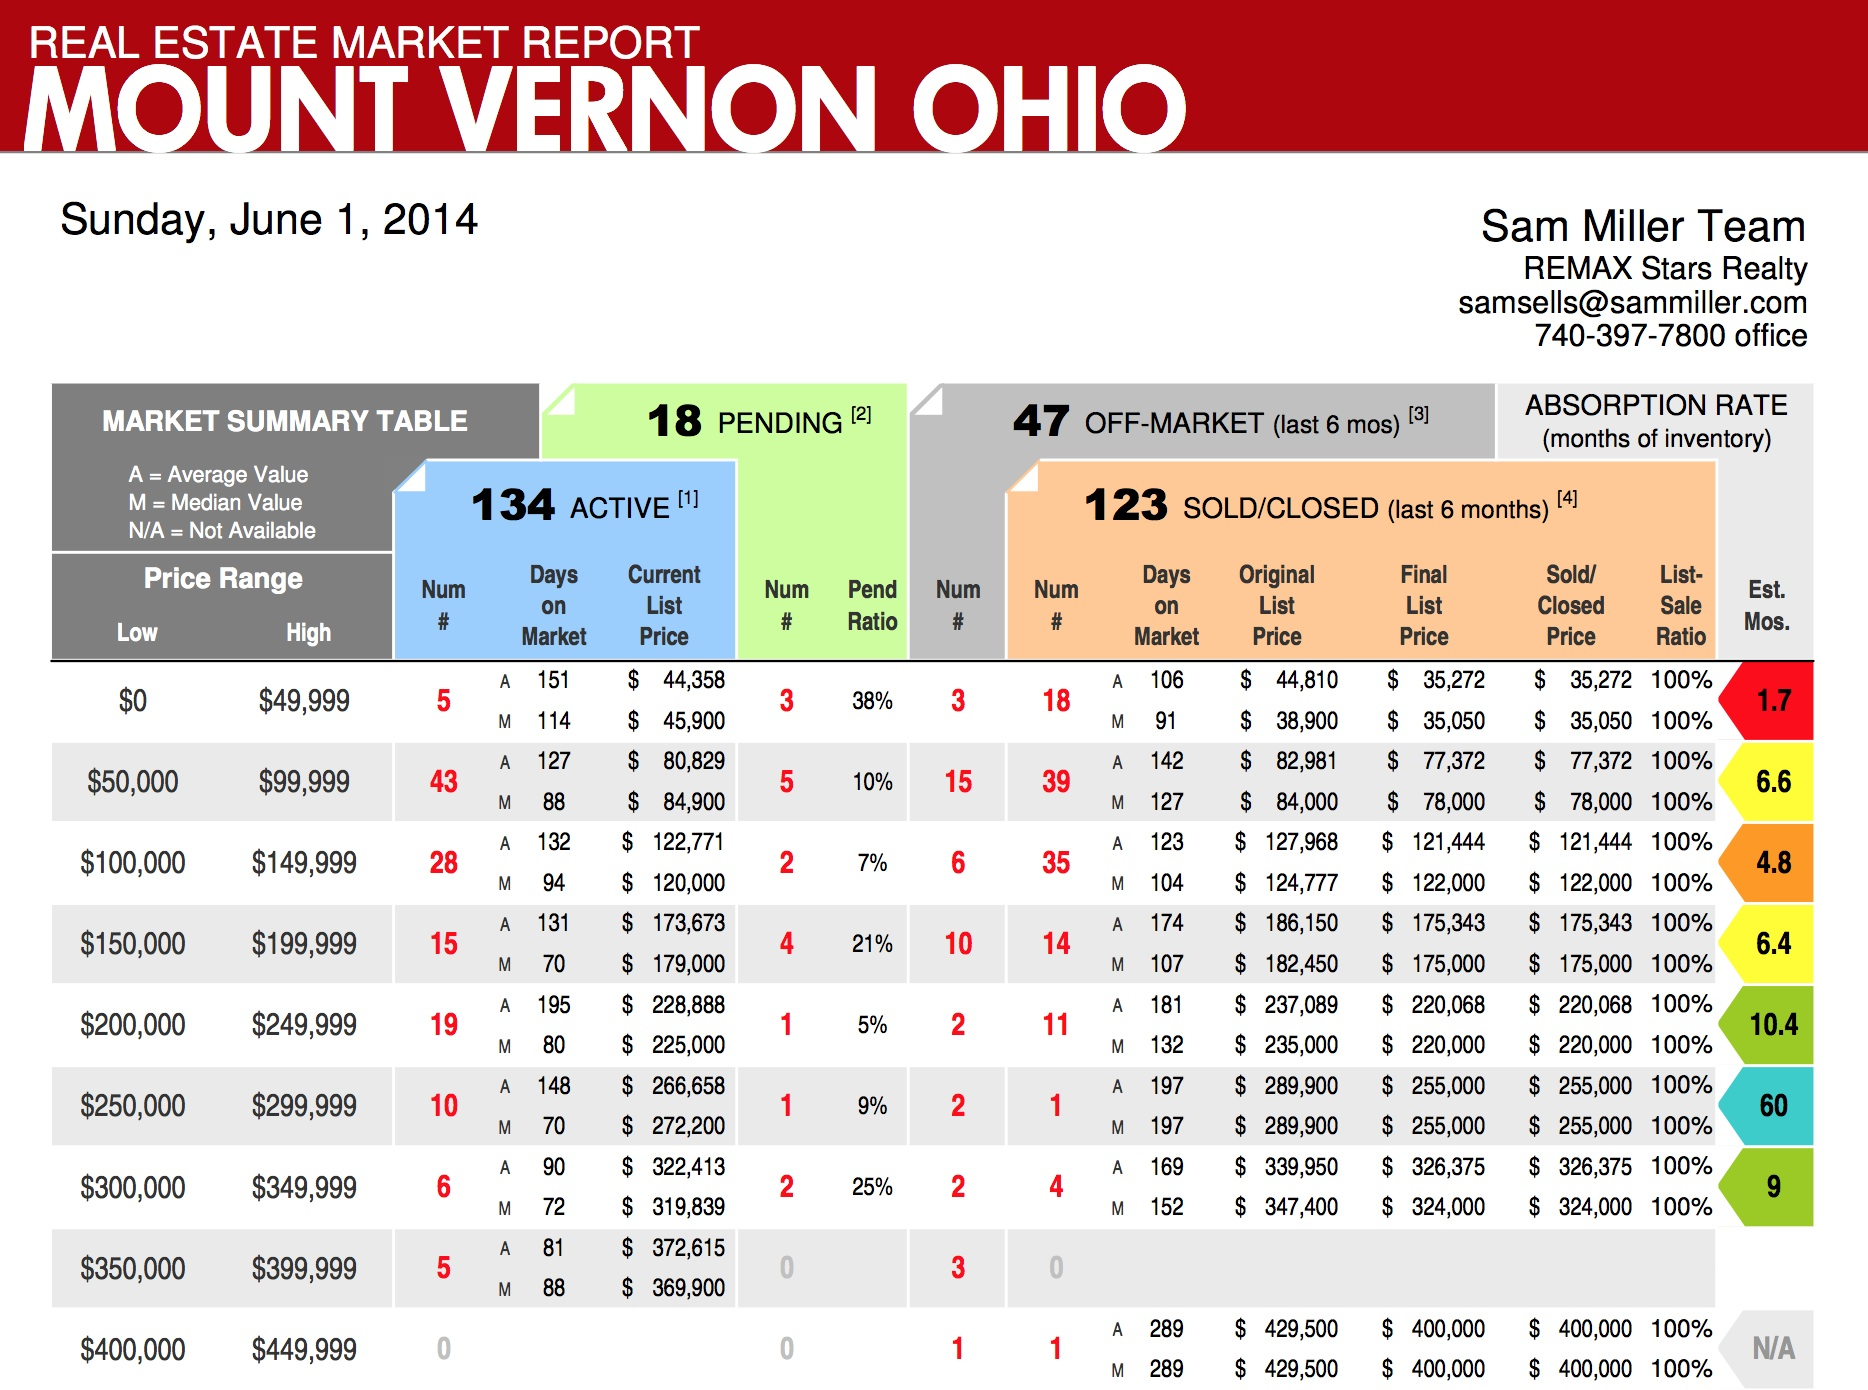 Mount Vernon Ohio Home Sales Report by Sam Miller